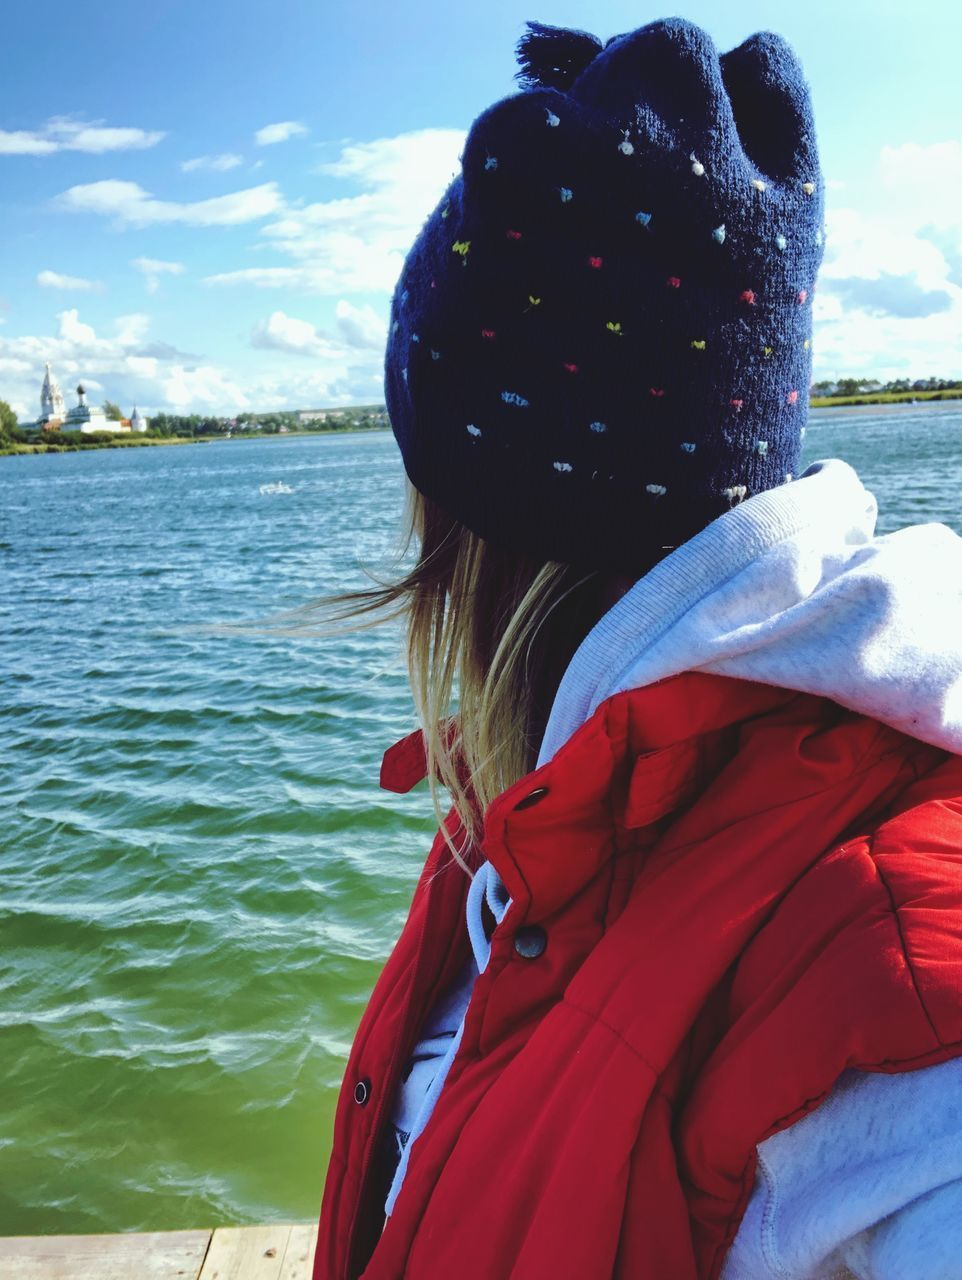 water, real people, rear view, one person, leisure activity, clothing, warm clothing, winter, child, lifestyles, women, day, portrait, hat, childhood, nature, waist up, red, scarf, outdoors, hood - clothing, looking at view